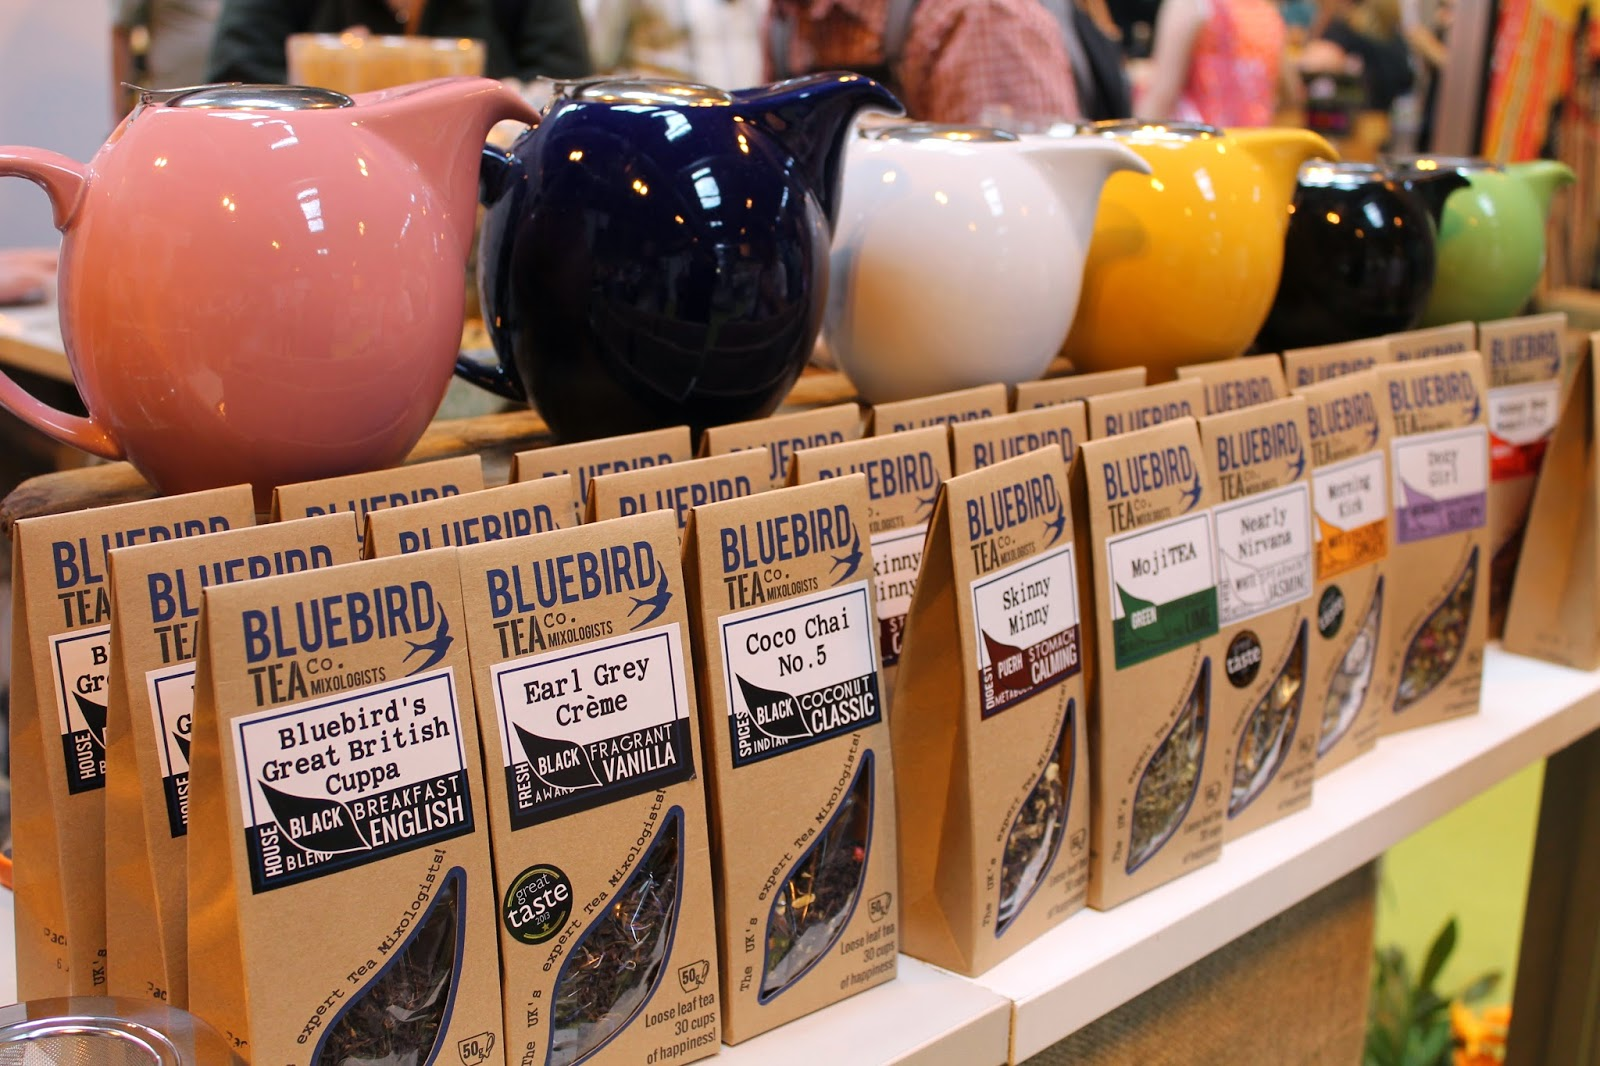 BBC Good Food Show Summer - NEC Birmingham - Bluebird Tea Co.